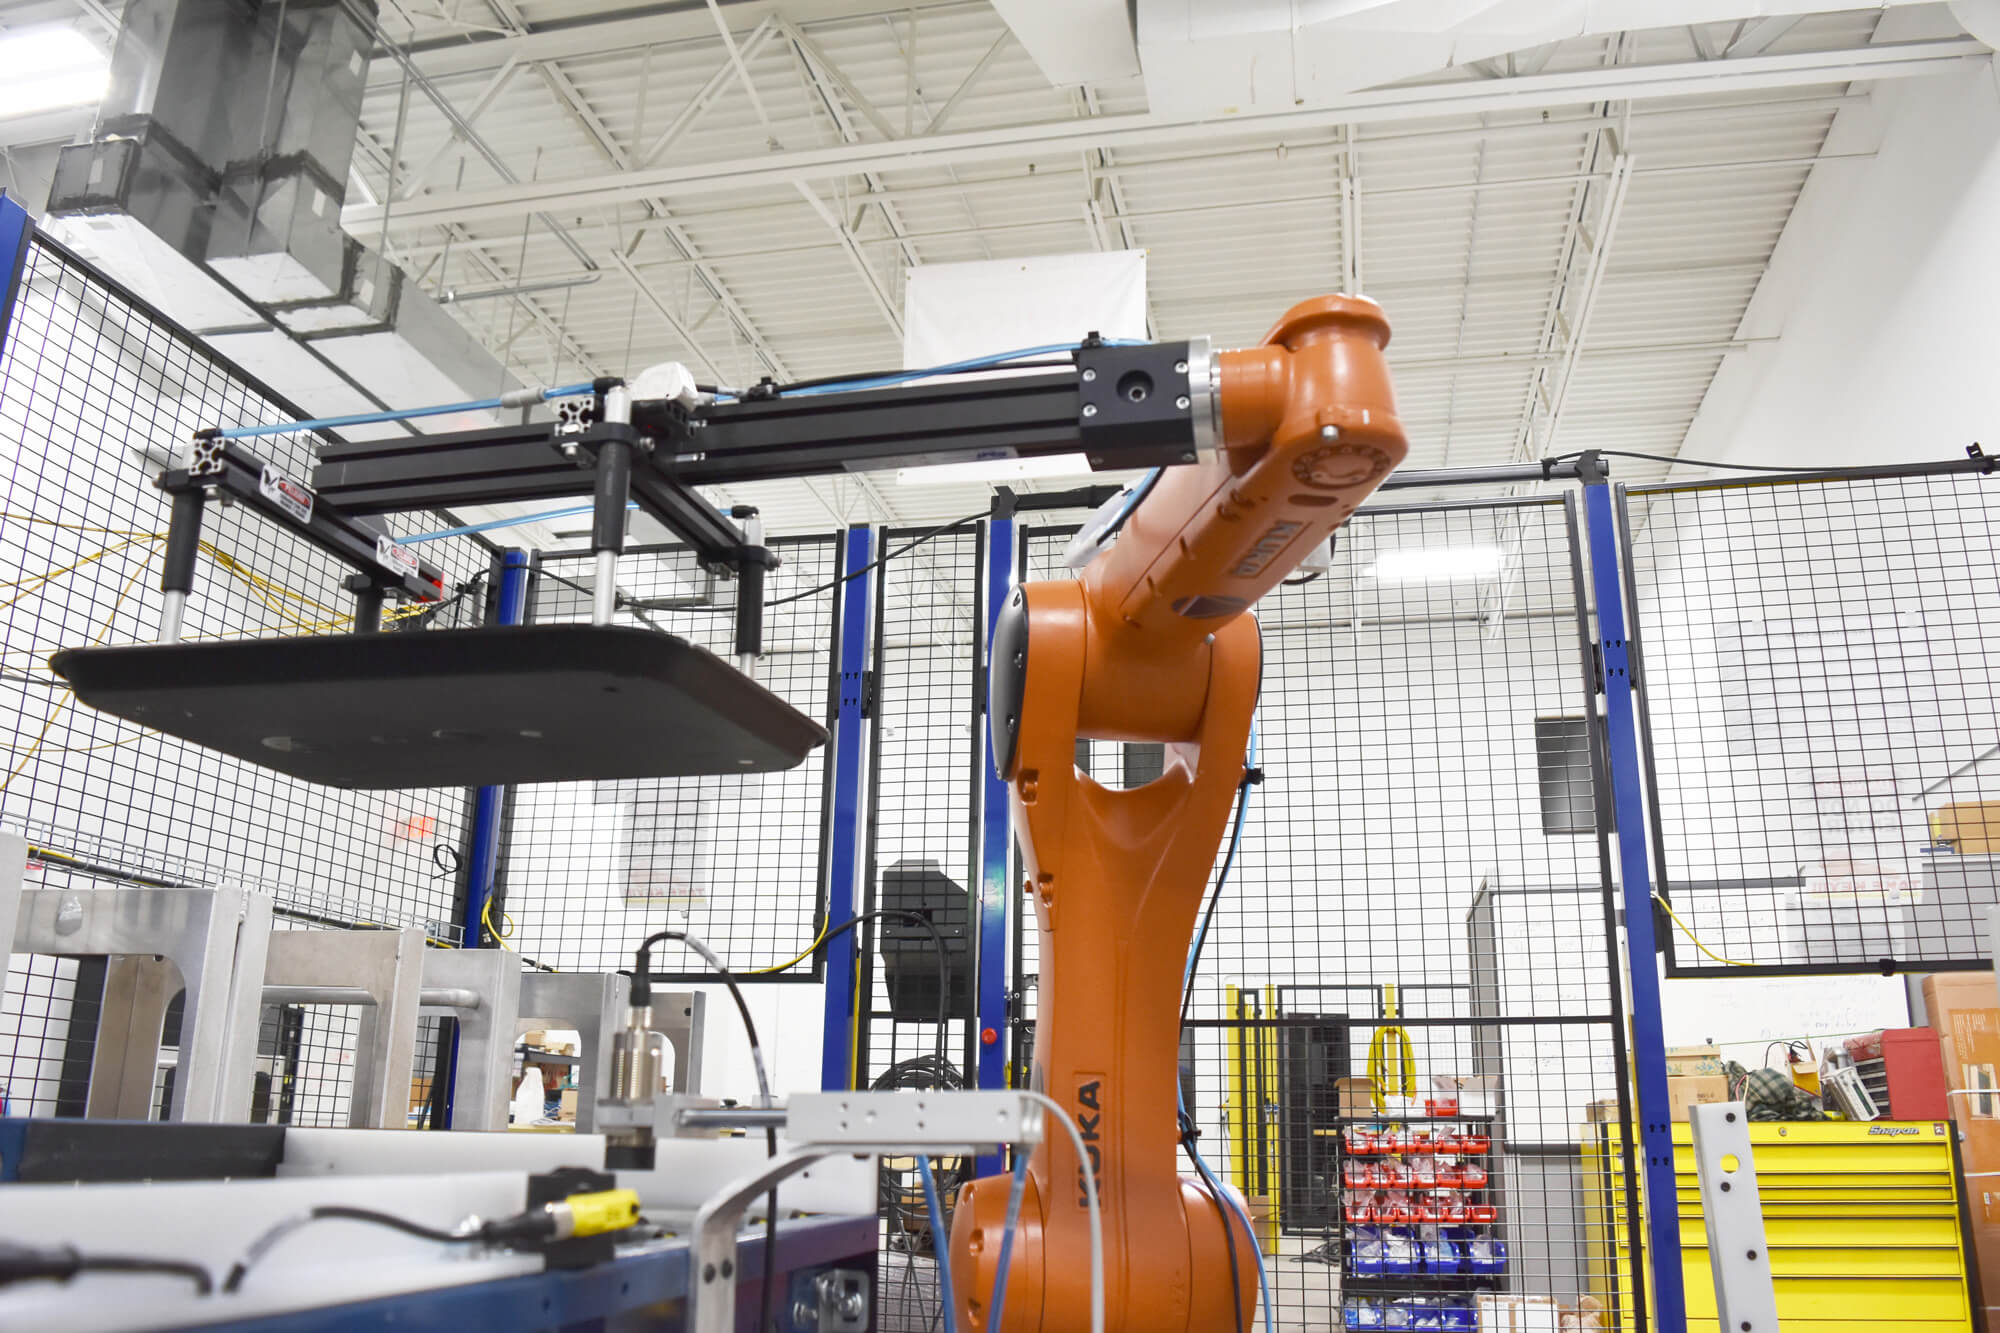 Large Kuka robot working at a production line